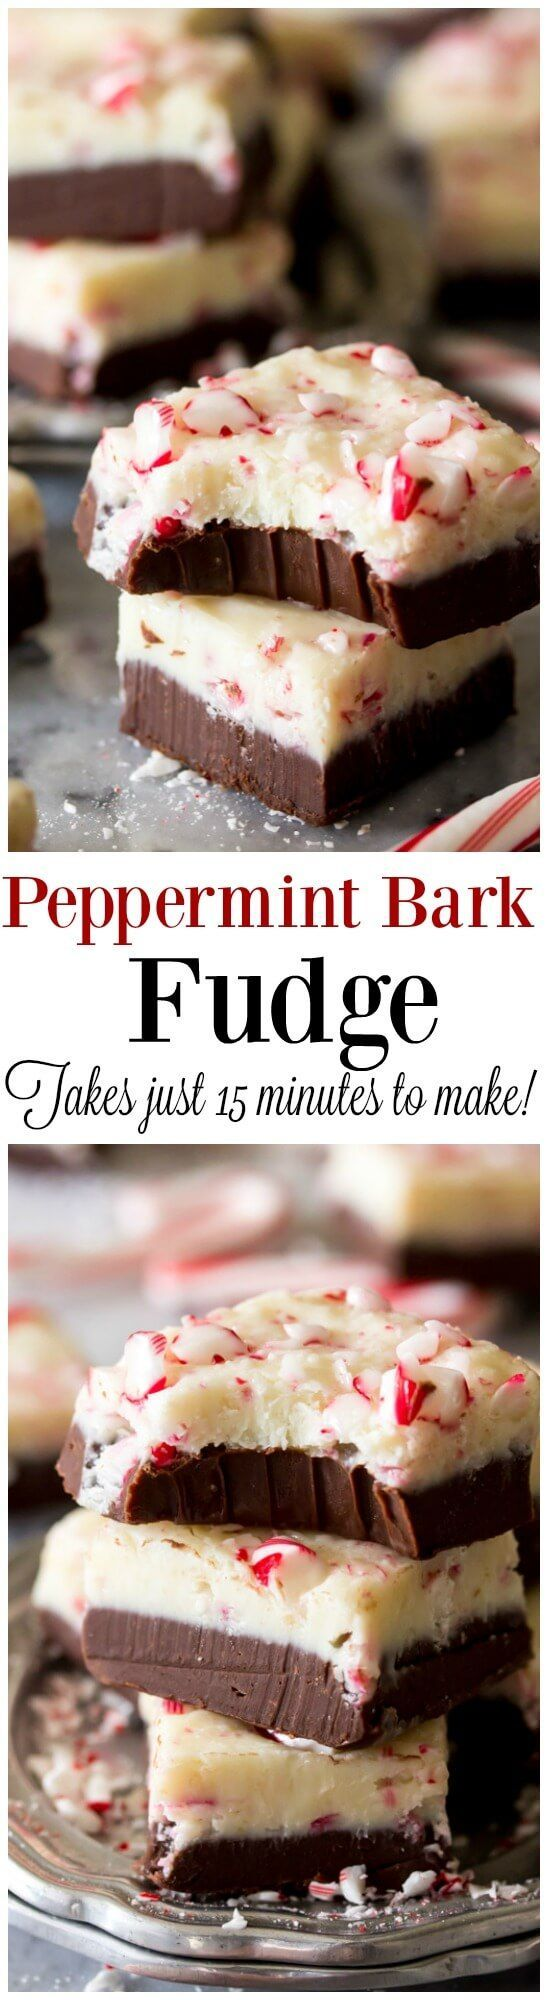 this looks like a delicious and easy christmas dessert idea - Easy Christmas Desserts Pinterest